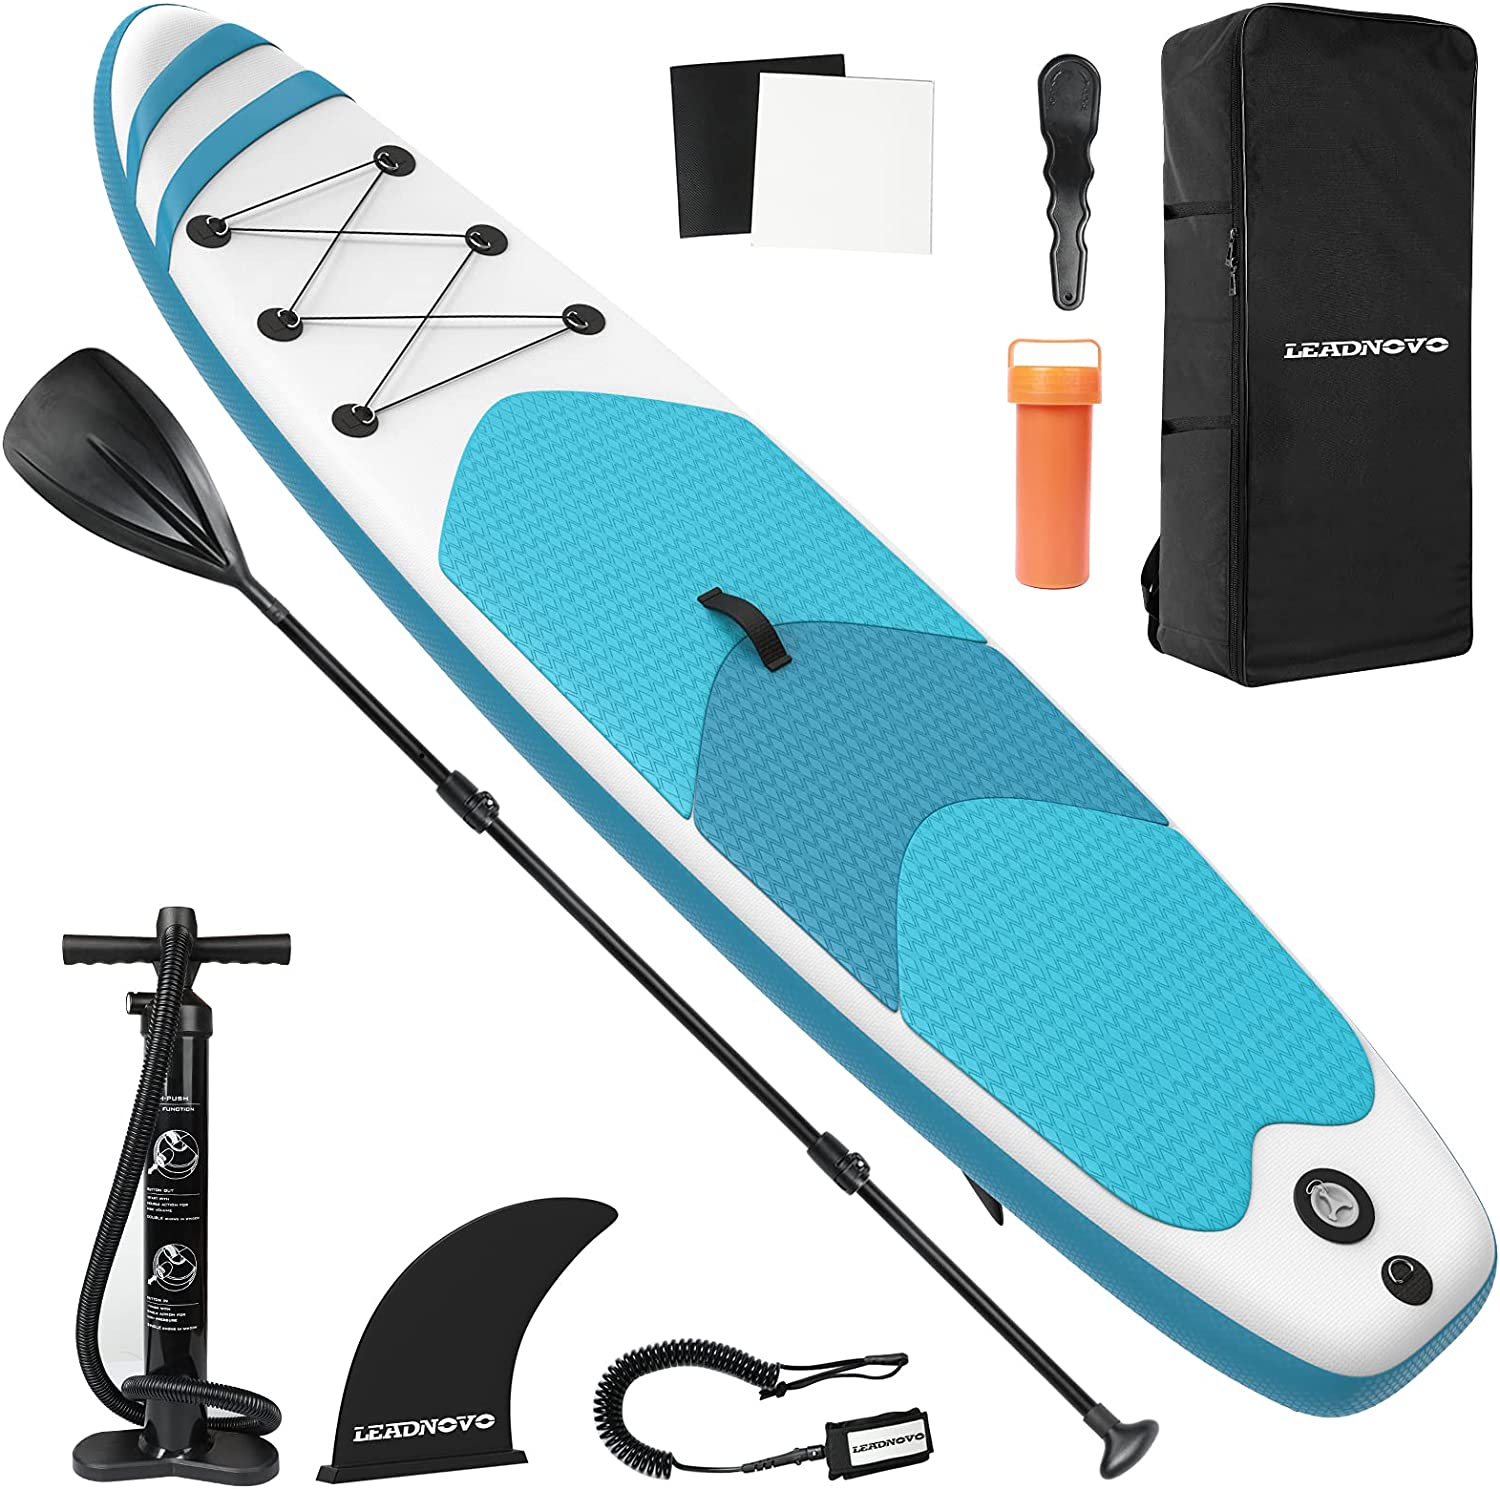 LEADNOVO Inflatable Stand Up Paddle Board for Adults 付与 訳あり with 10.5'